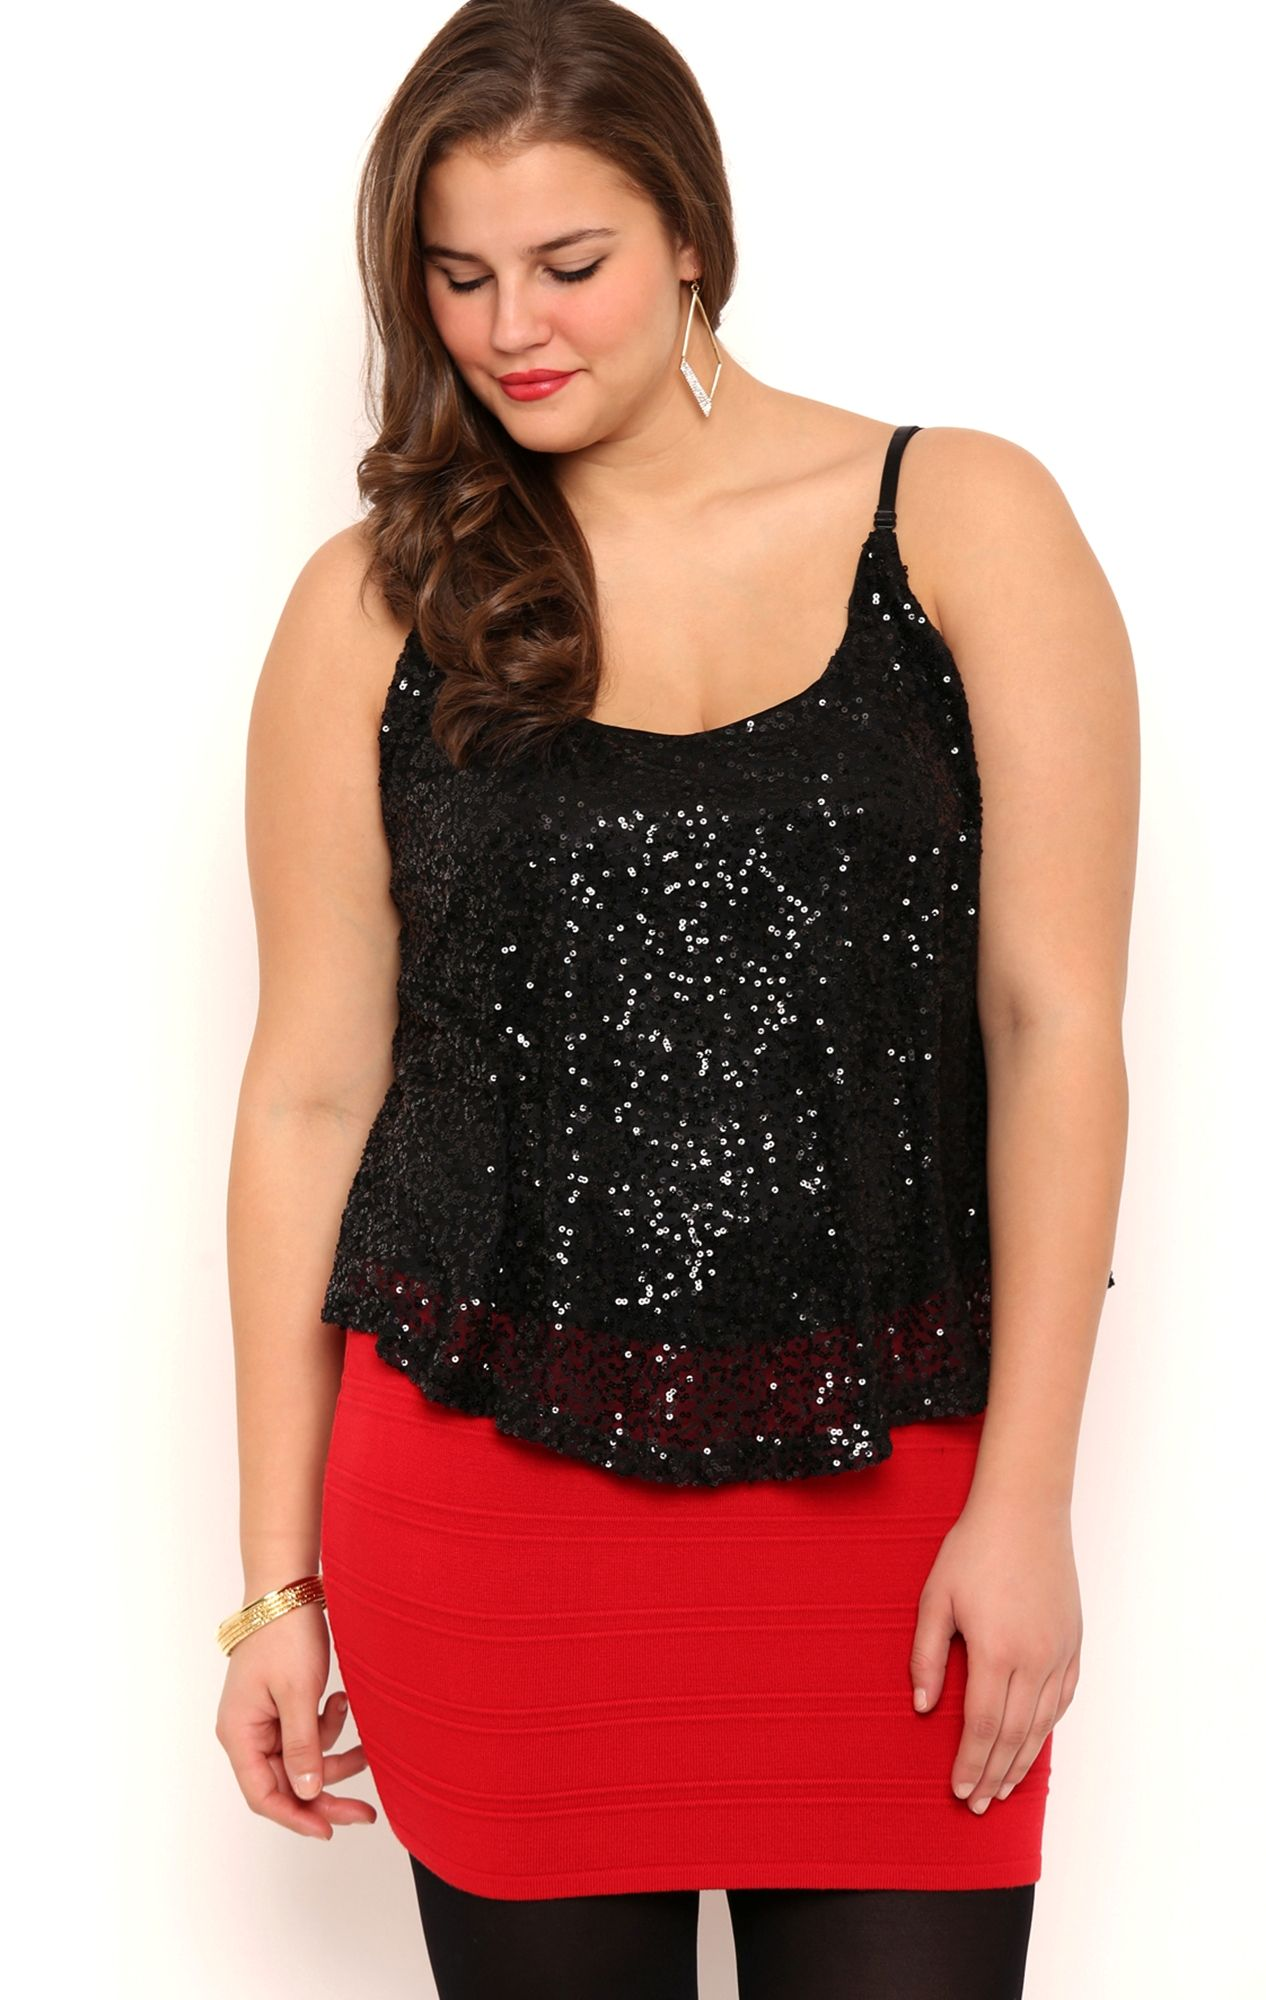 dde82ac2941 Plus Size Sequin Trapeze Tank Top with Adjustable Straps Plus Size Dressy  Tops